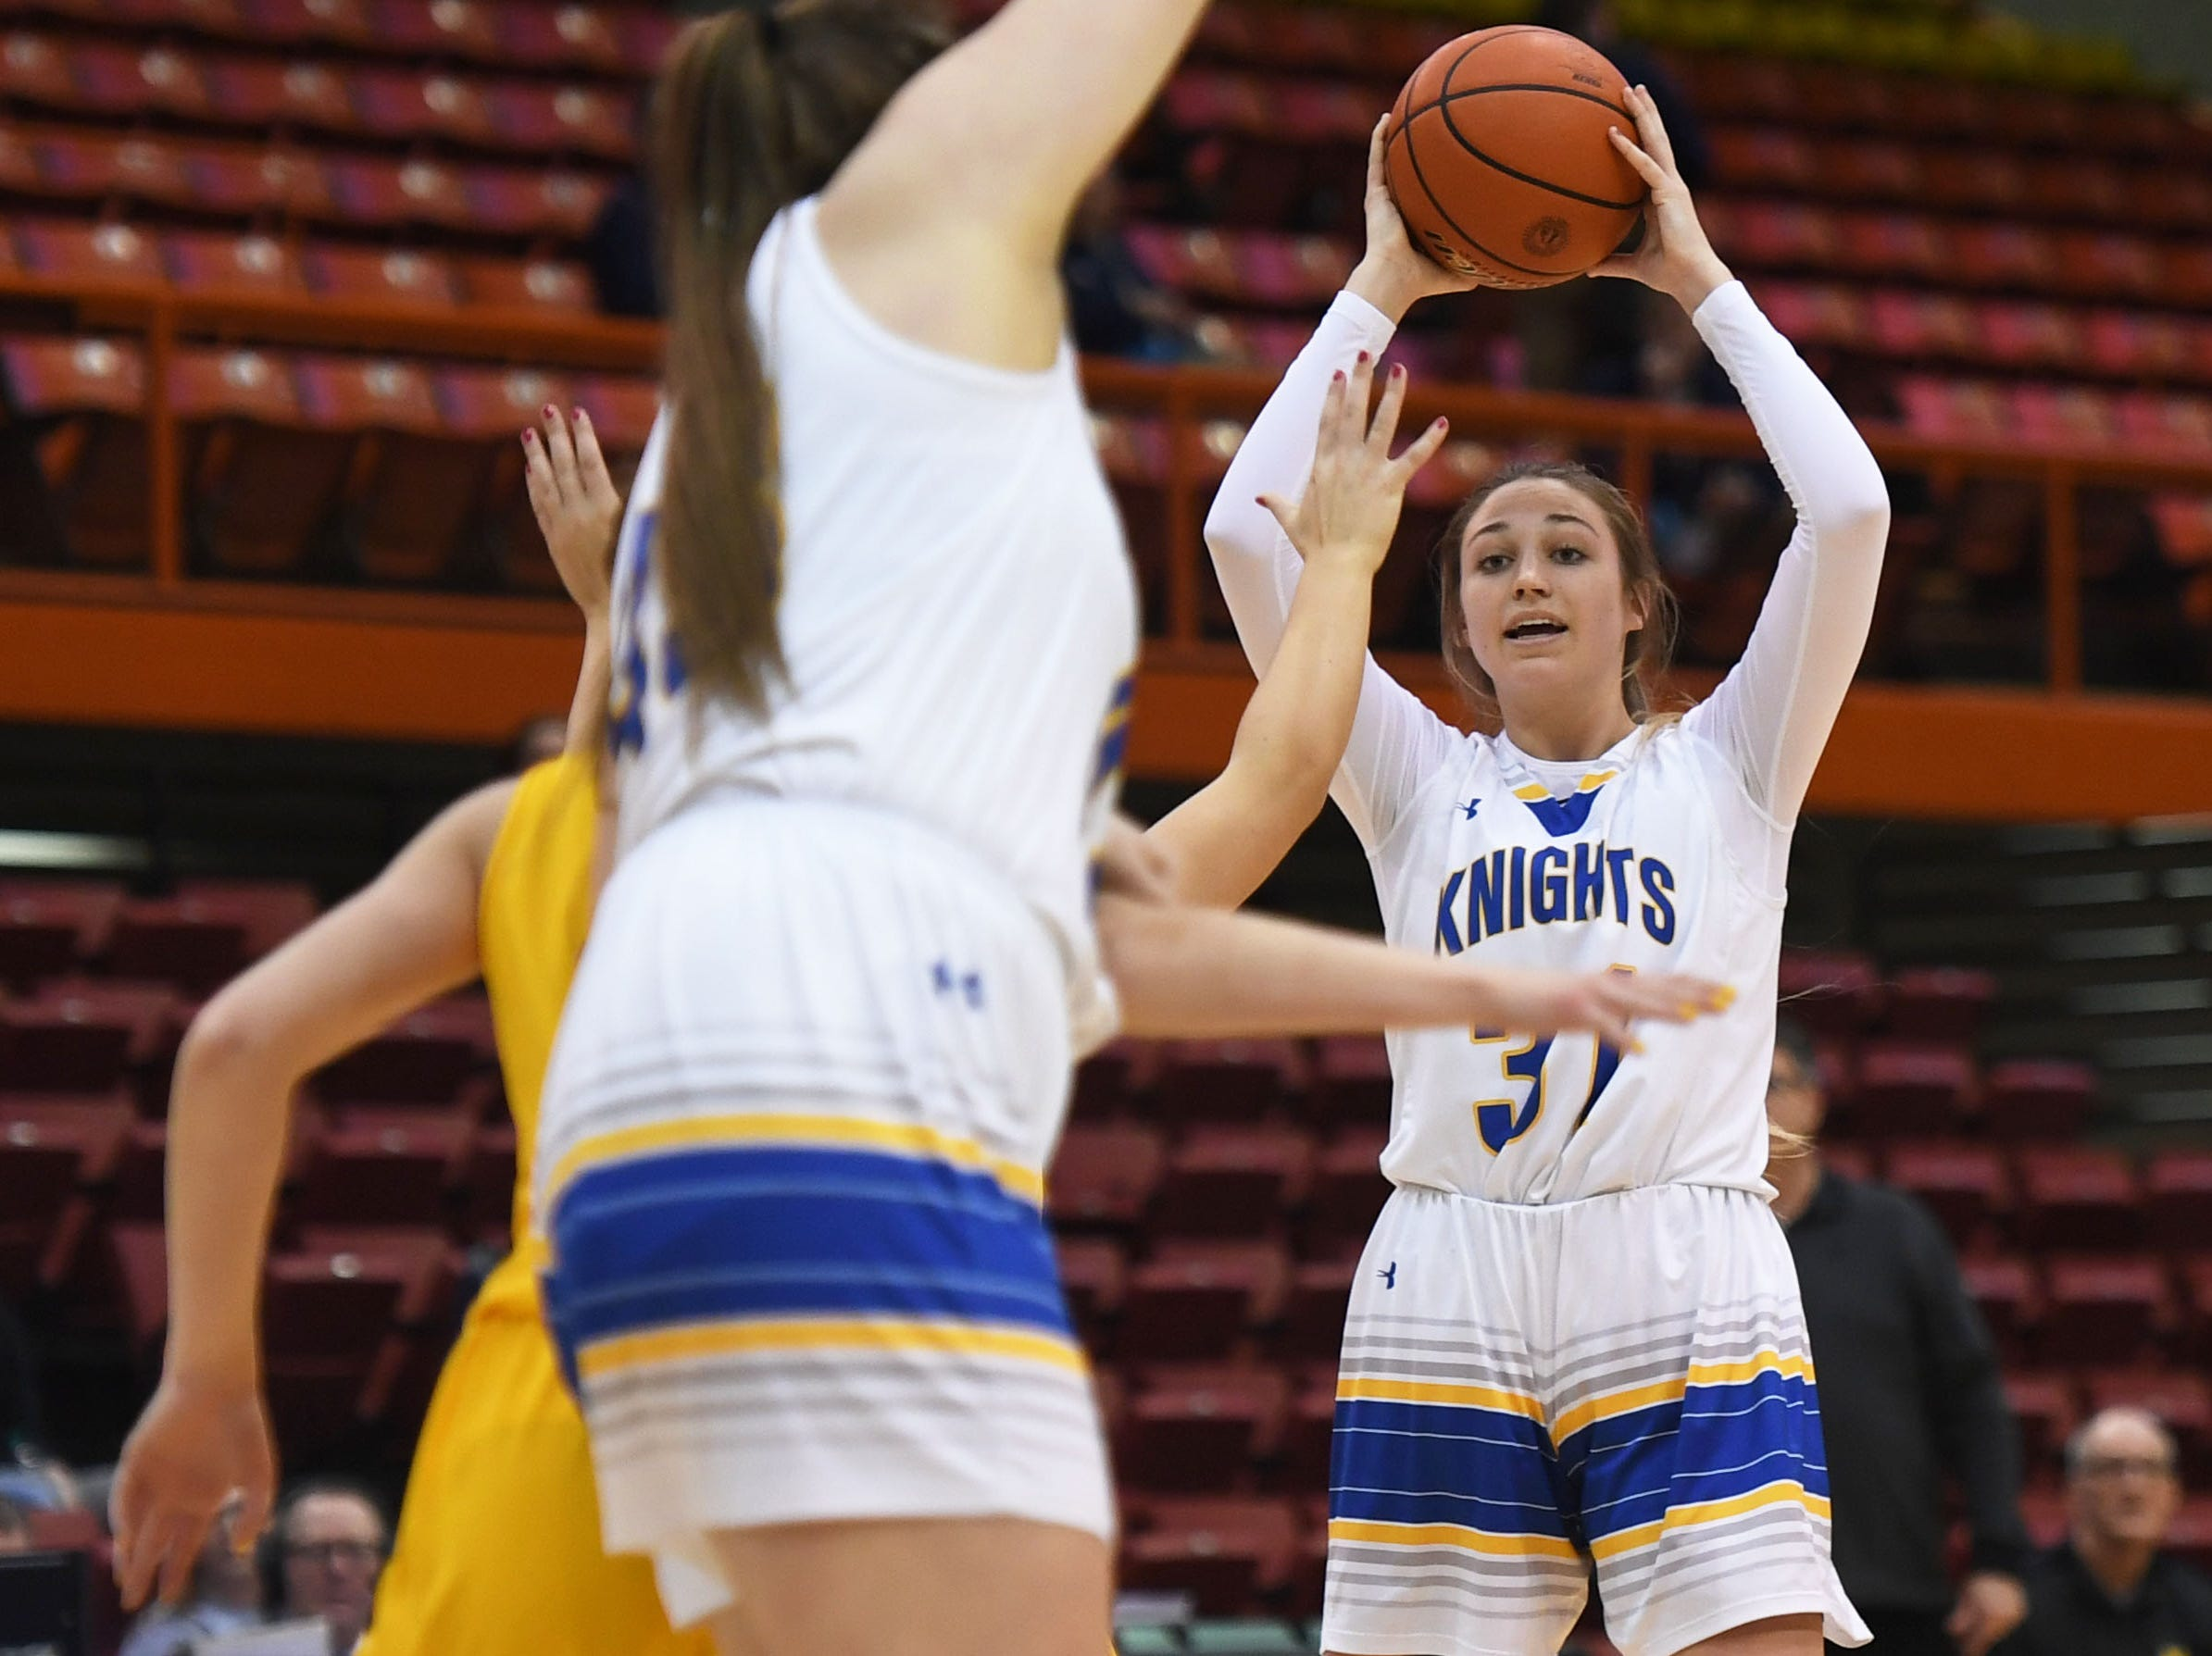 O'Gorman's Emma Ronsiek looks for an open teammate during the game against Mitchell in the Class AA quarterfinals Thursday, March 14, in Rapid City.